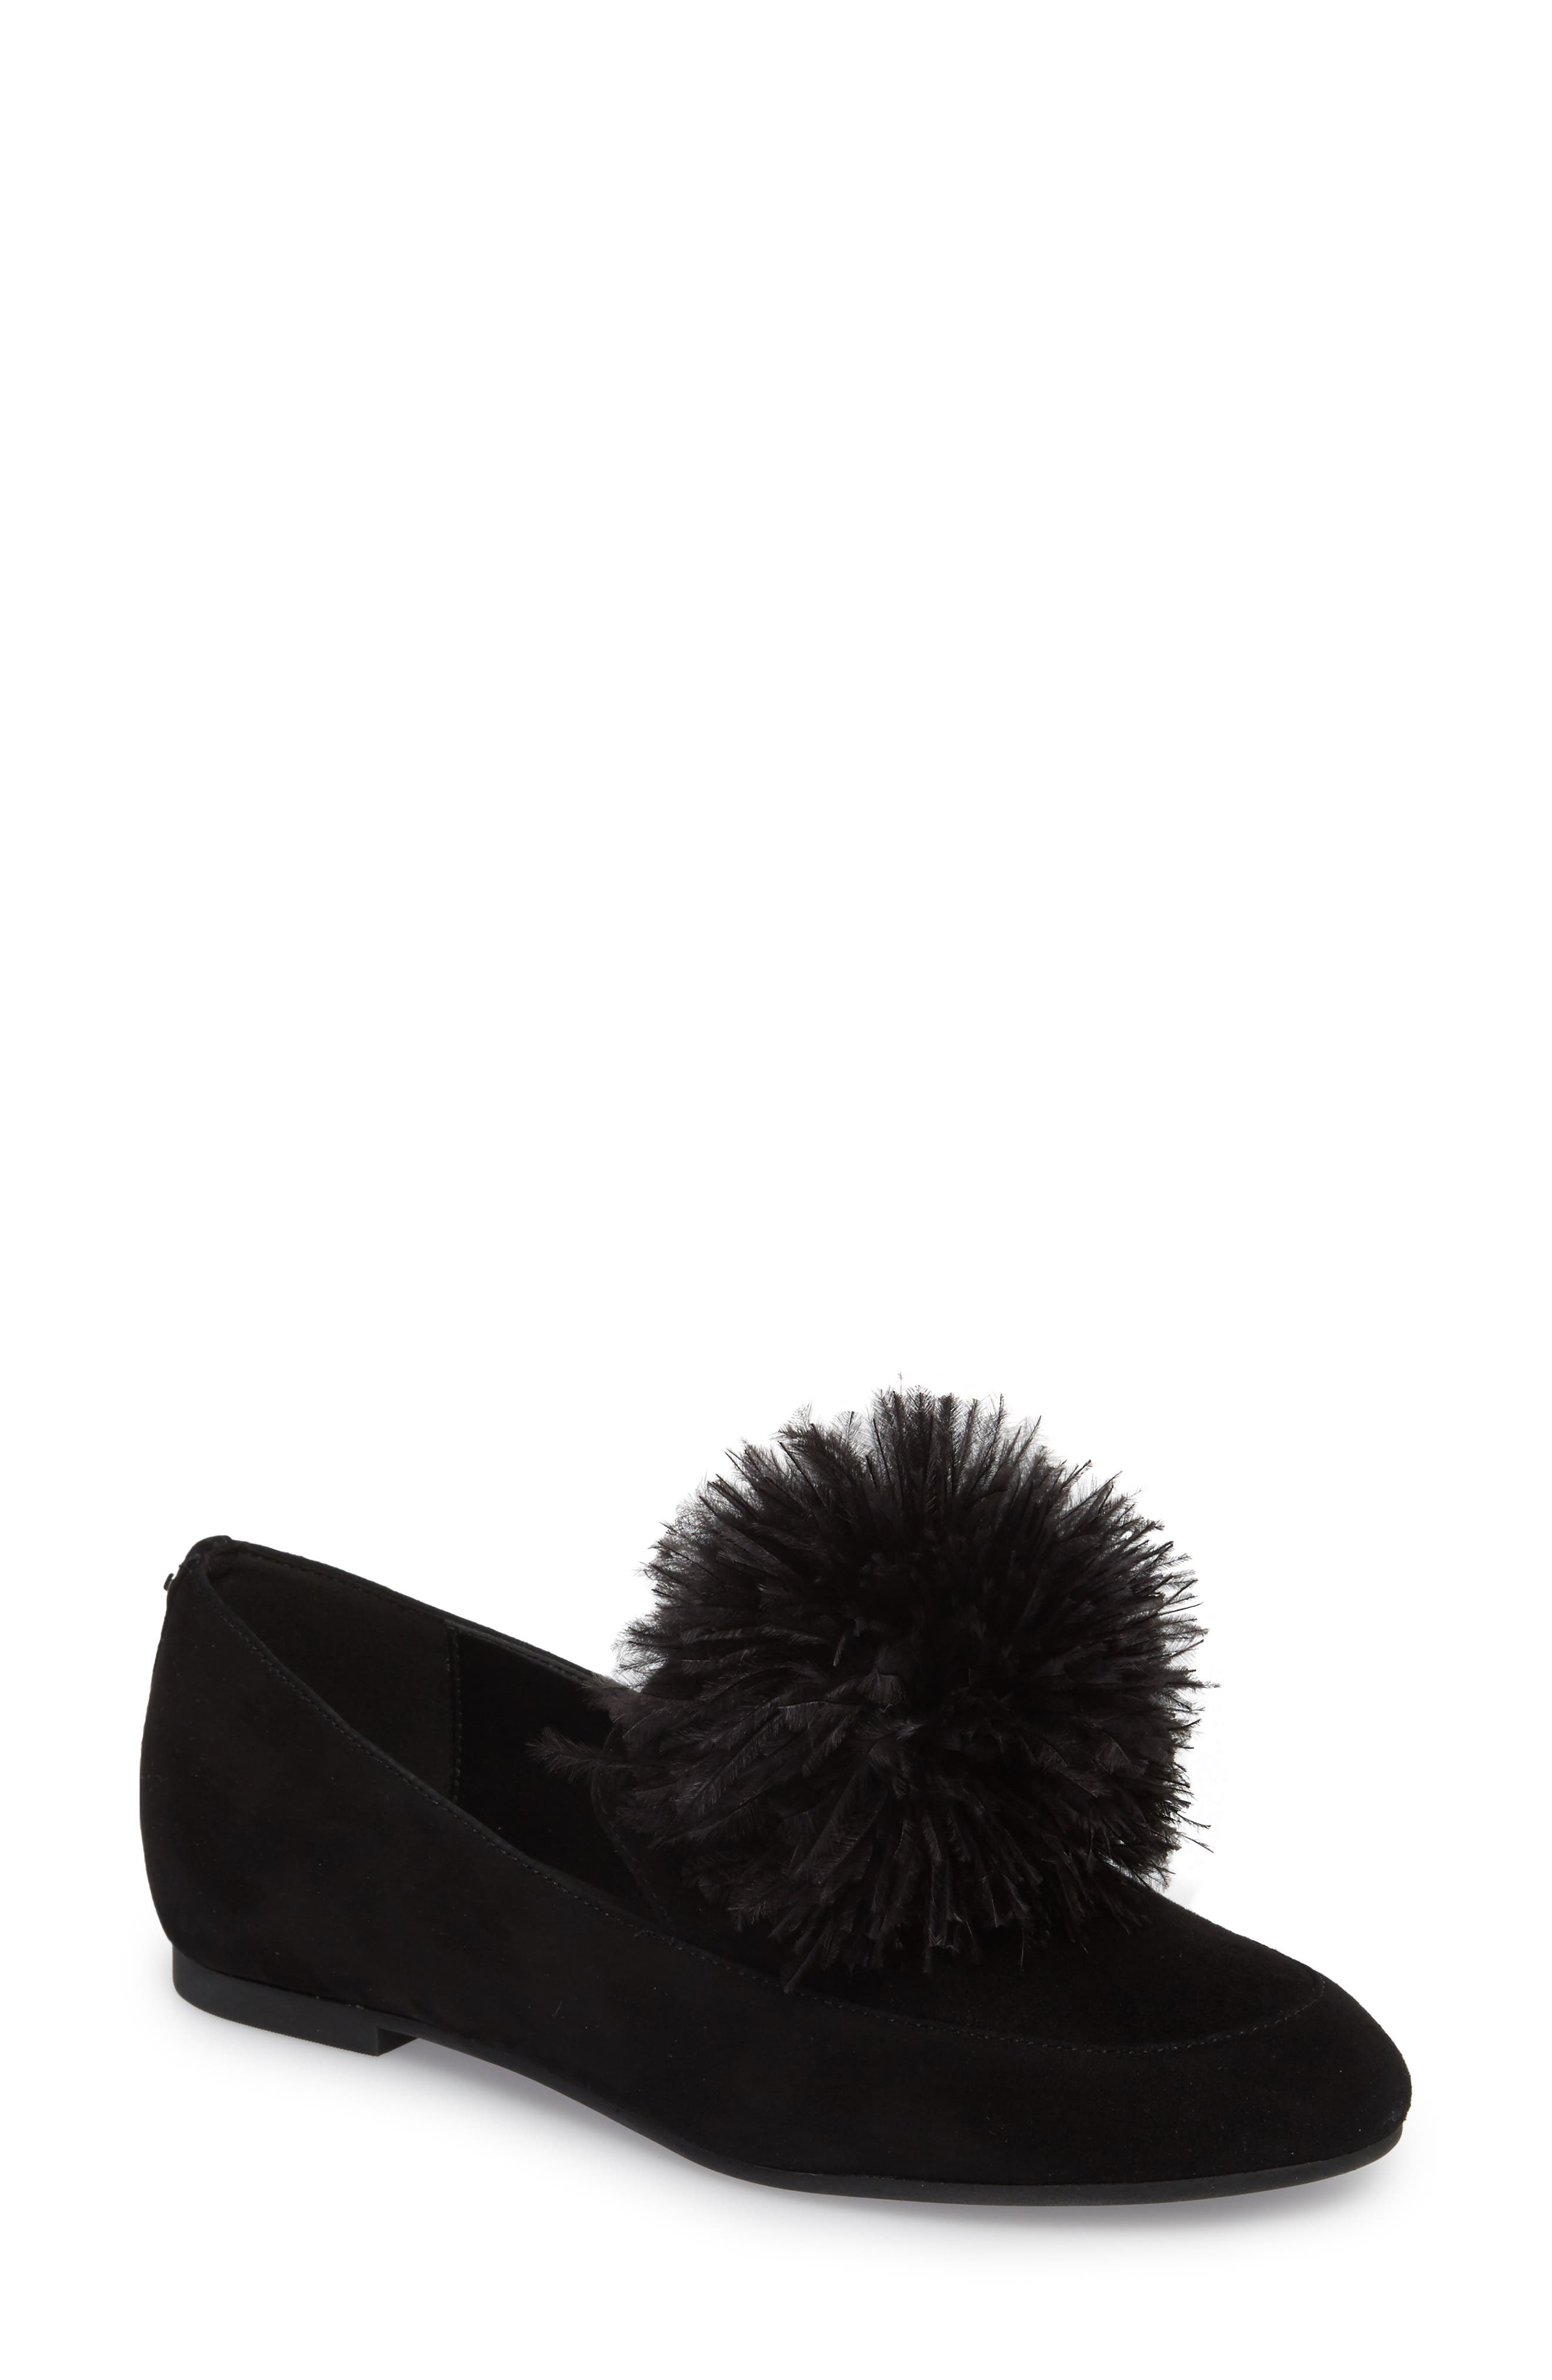 Fara Feather Pom Loafer,                         Main,                         color,